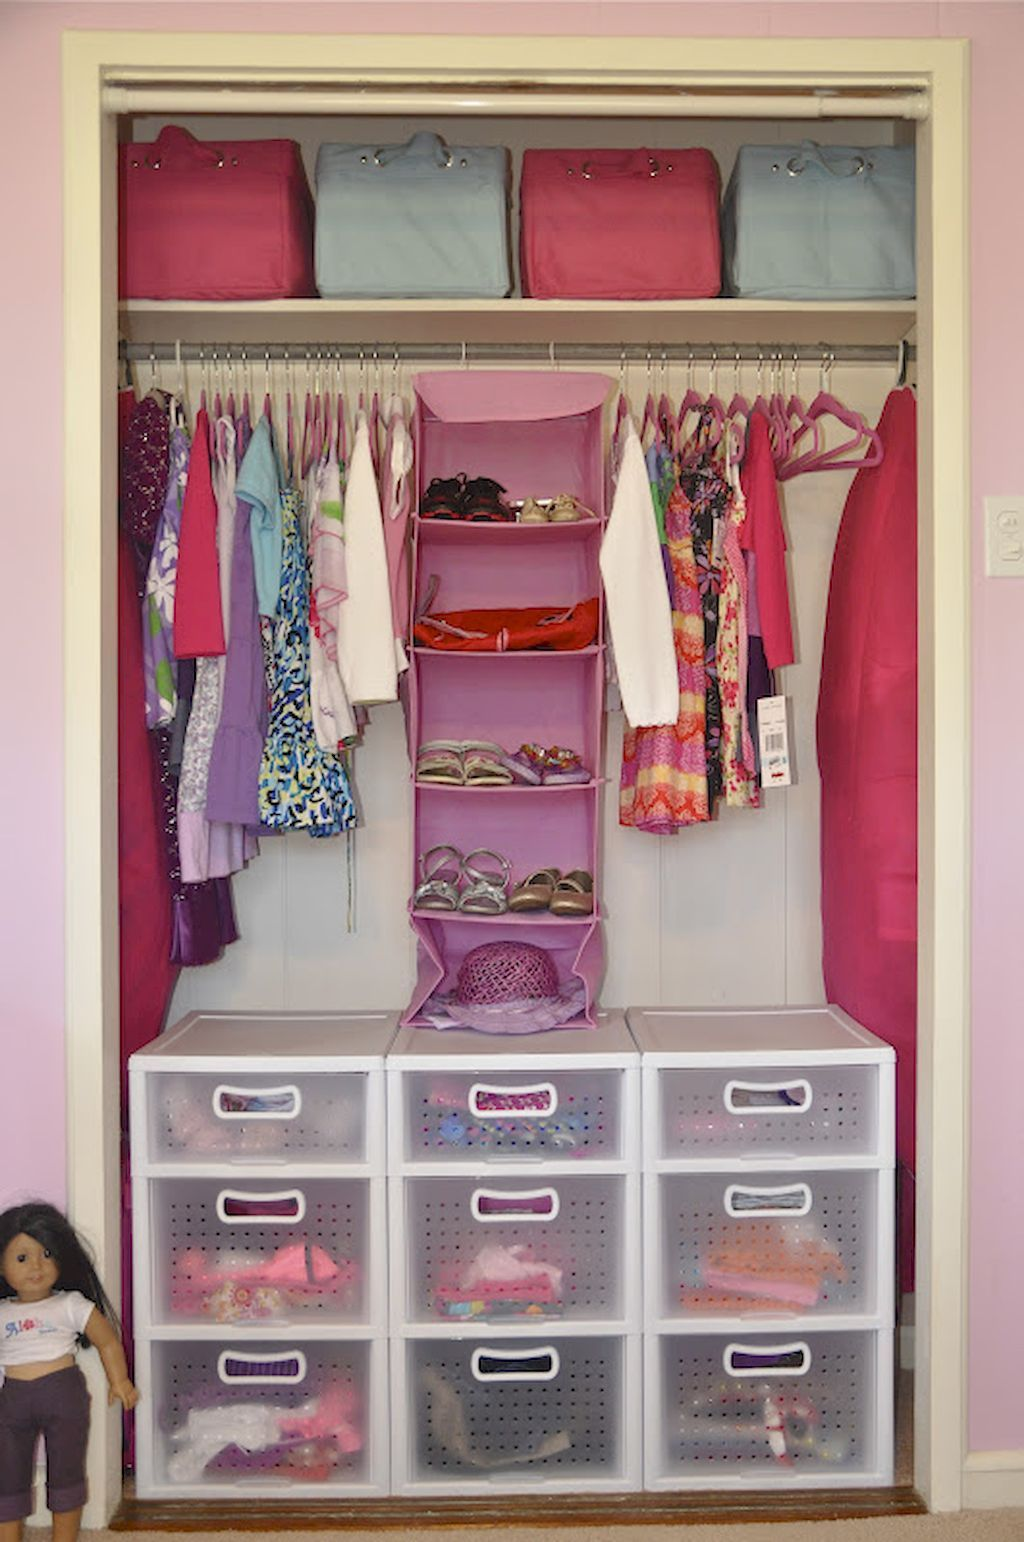 60 tips and tricks dorm room organization storage ideas on a budget